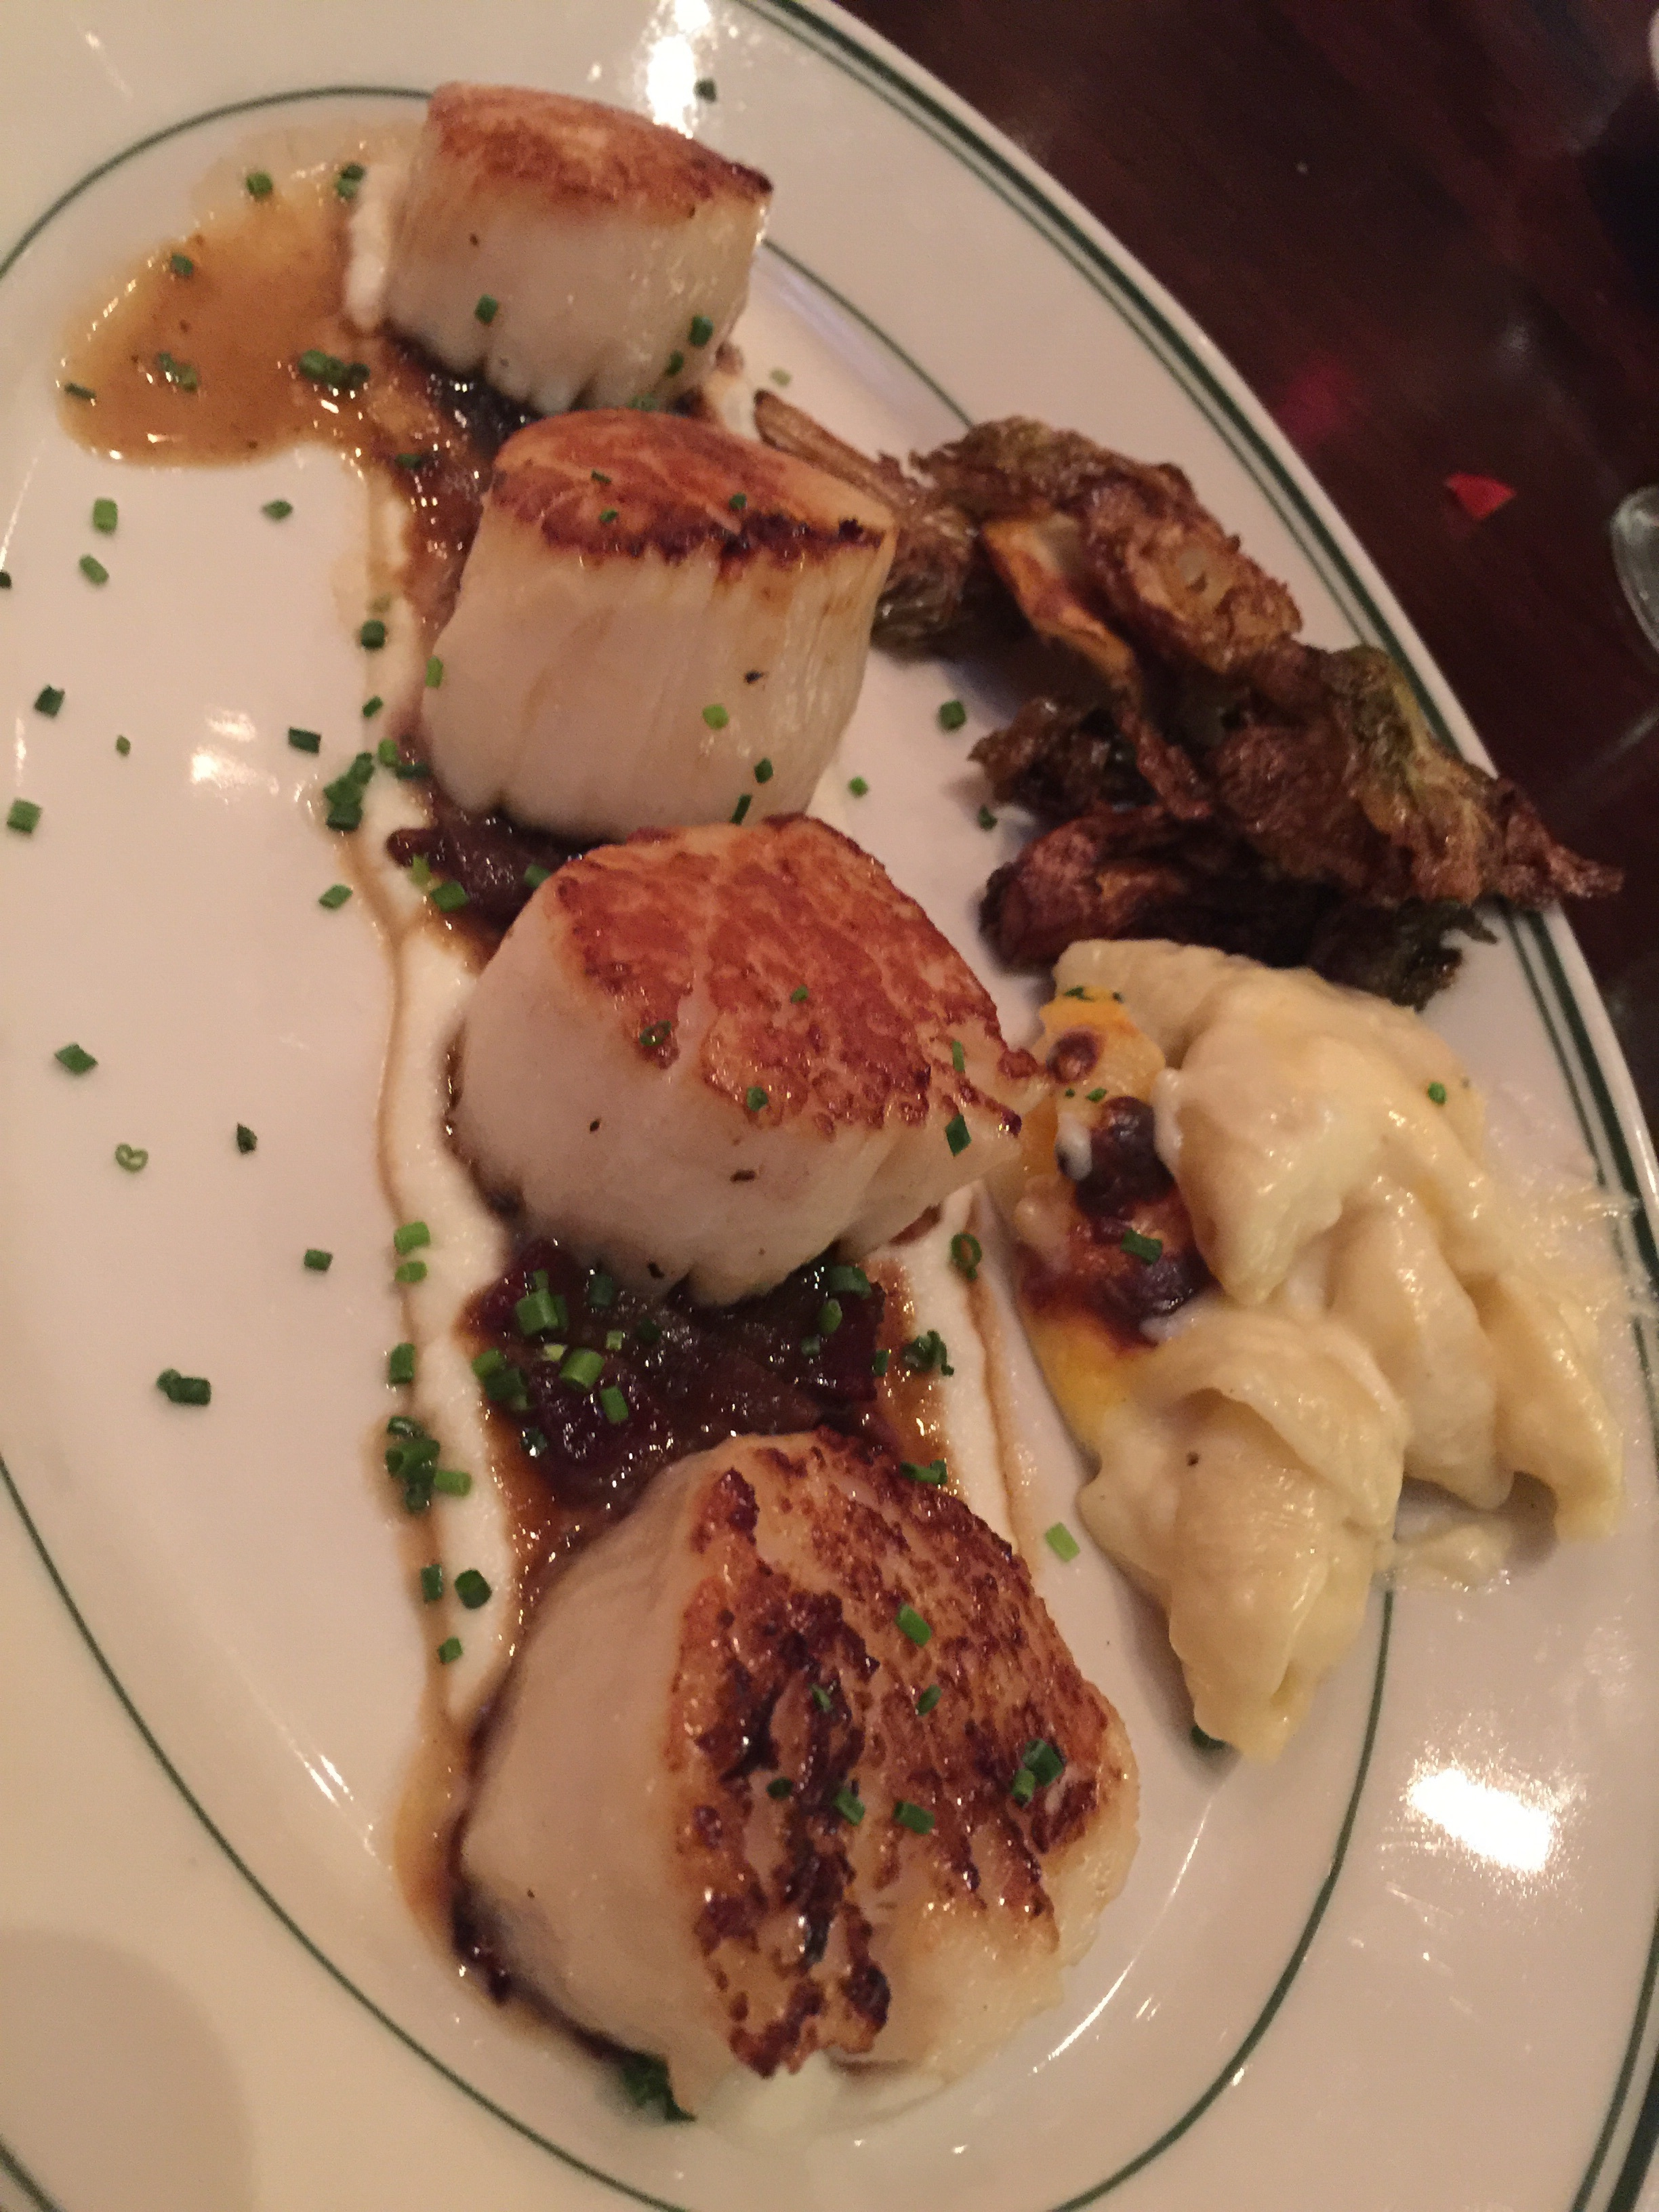 Scallops, mac and cheese, and crispy brussells...amazing!